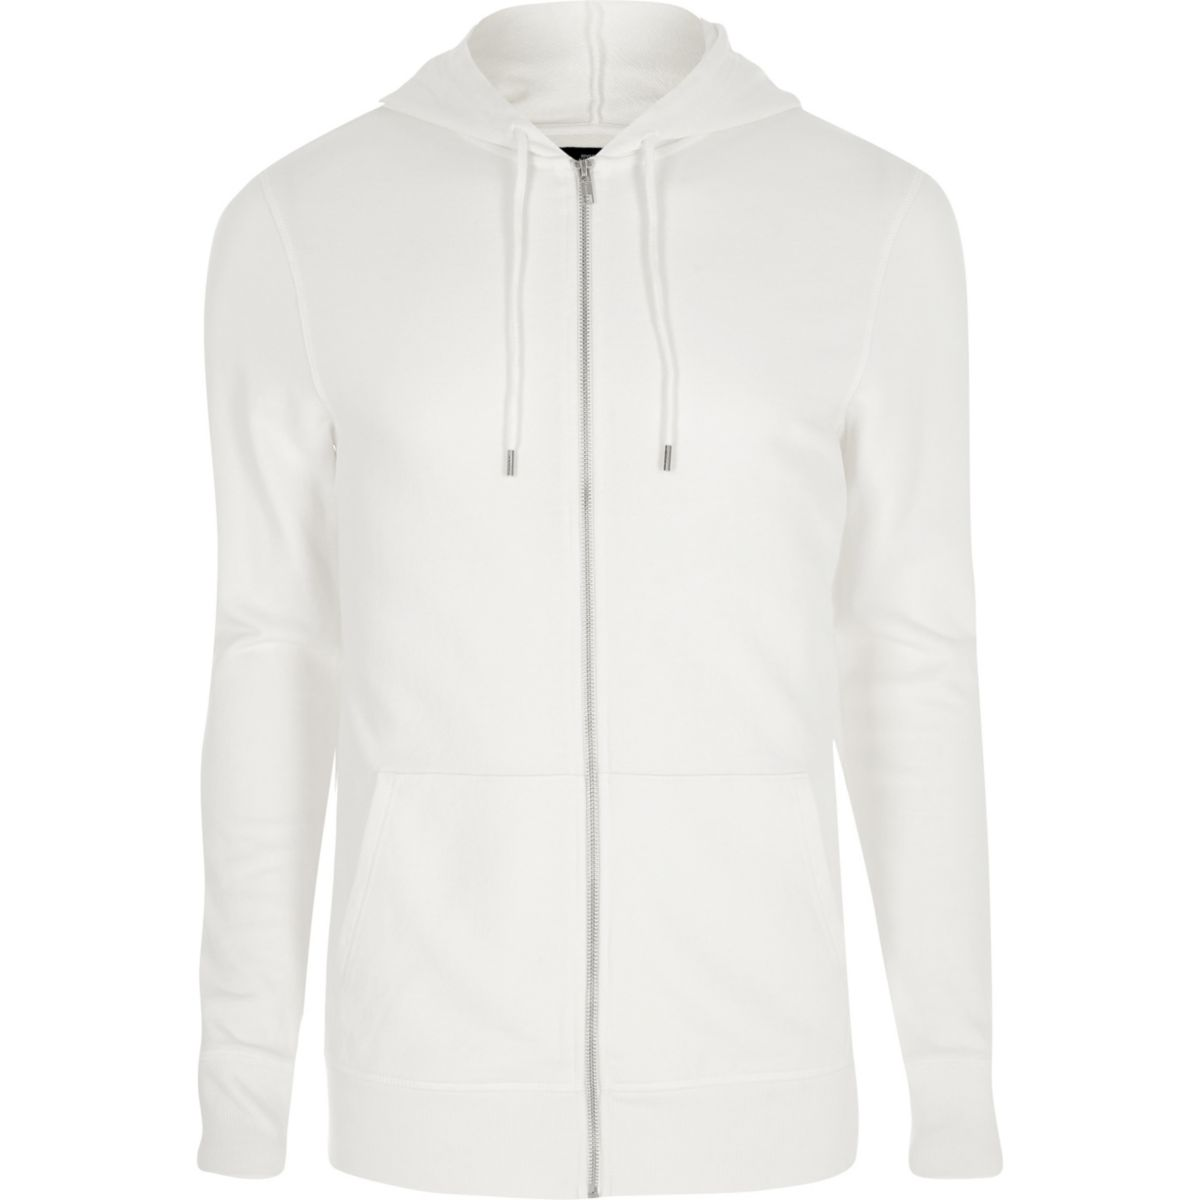 White muscle fit zip up hoodie